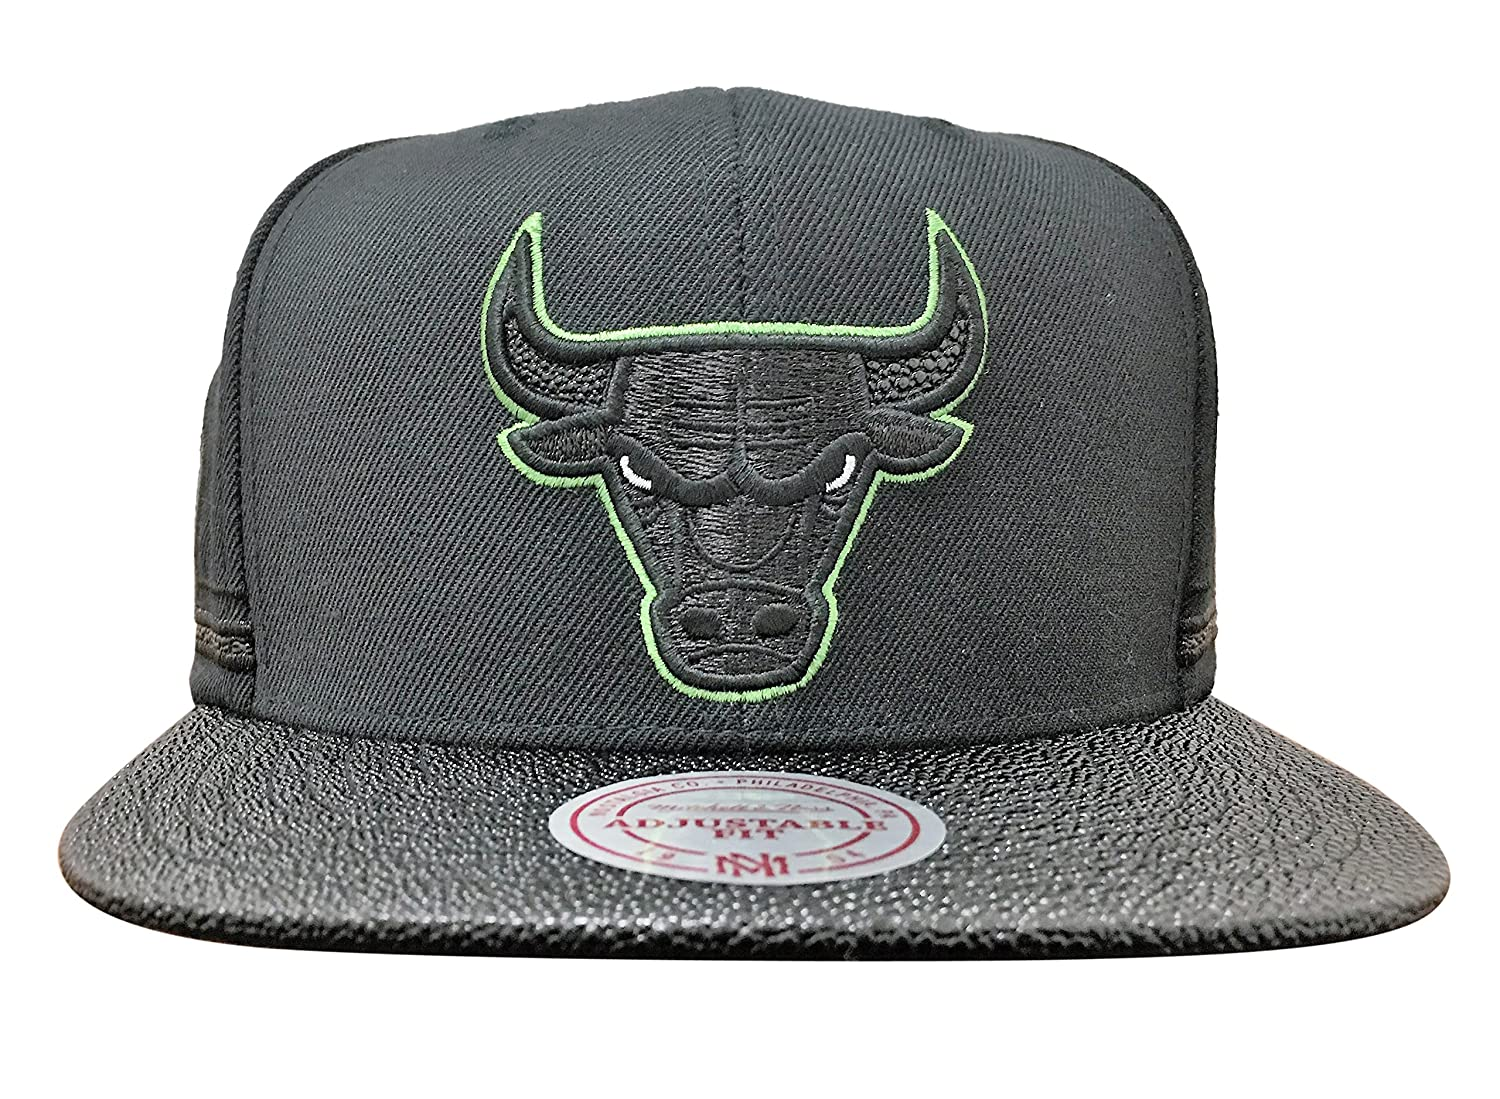 d88944e691f Top1  Chicago Bulls Mitchell   Ness Altitude Jersey Snapback Hat. Wholesale  Price